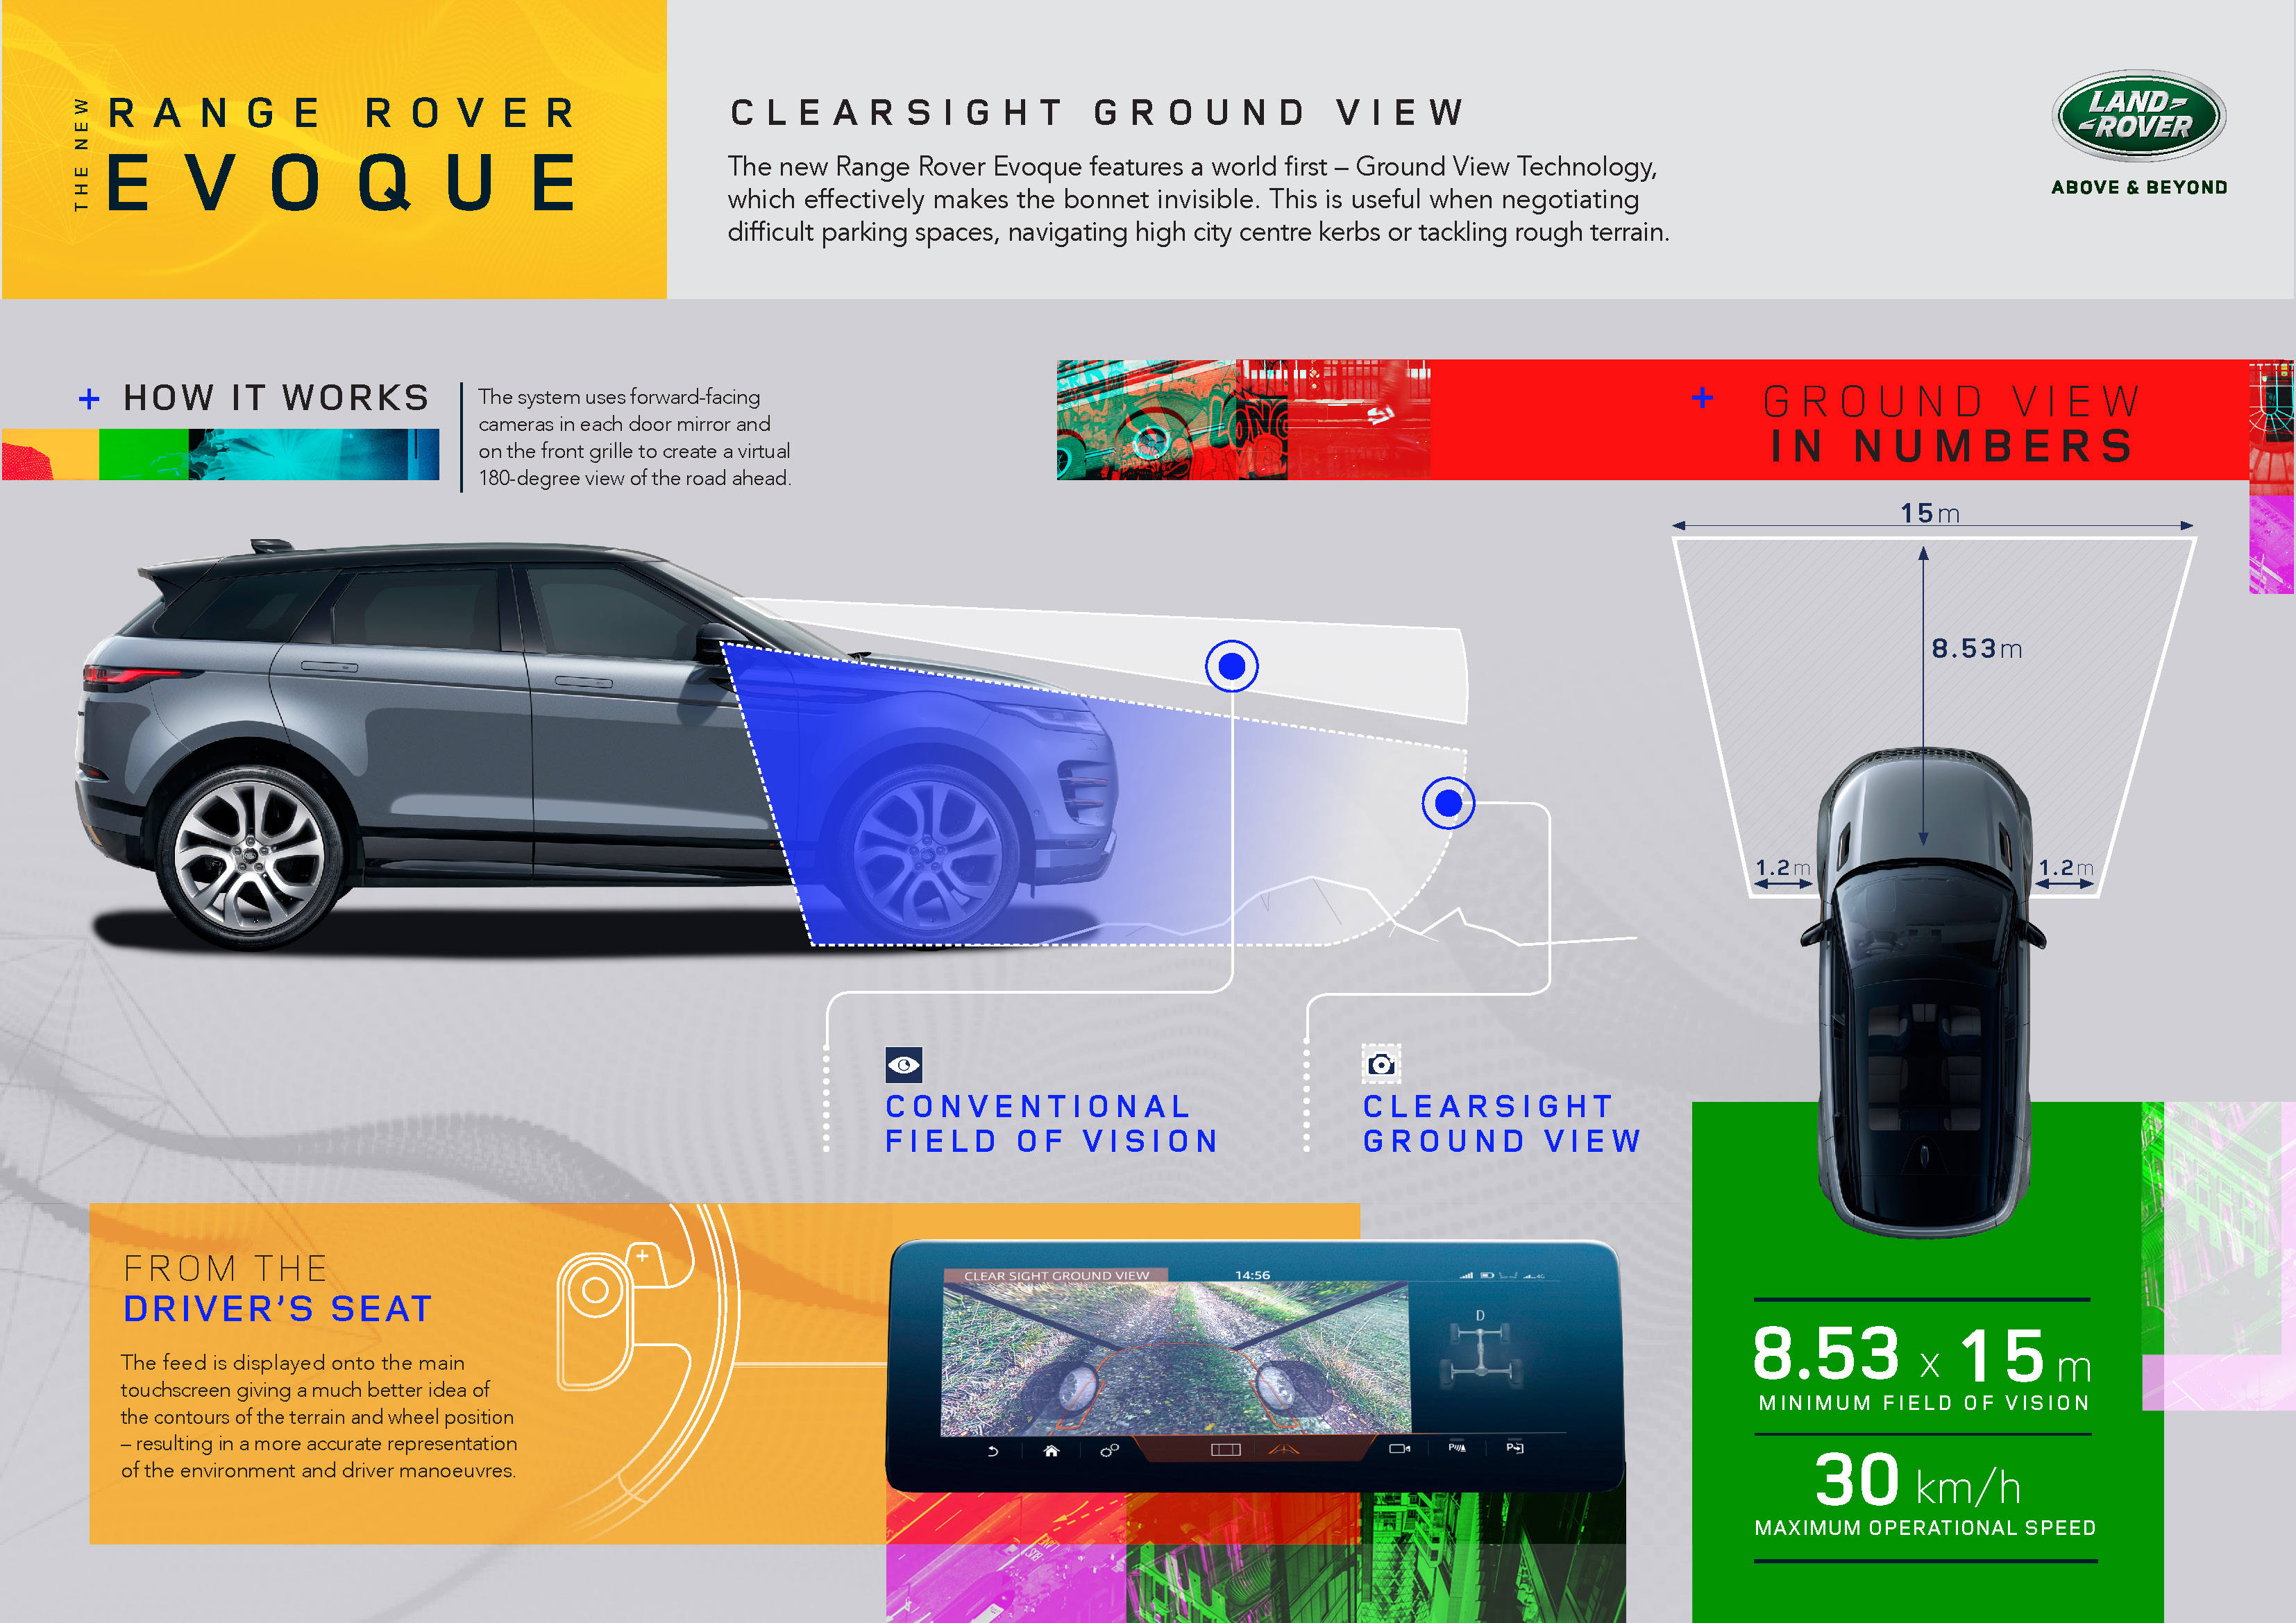 NEW RANGE ROVER EVOQUE: THE ALL-SEEING SUV | Land Rover